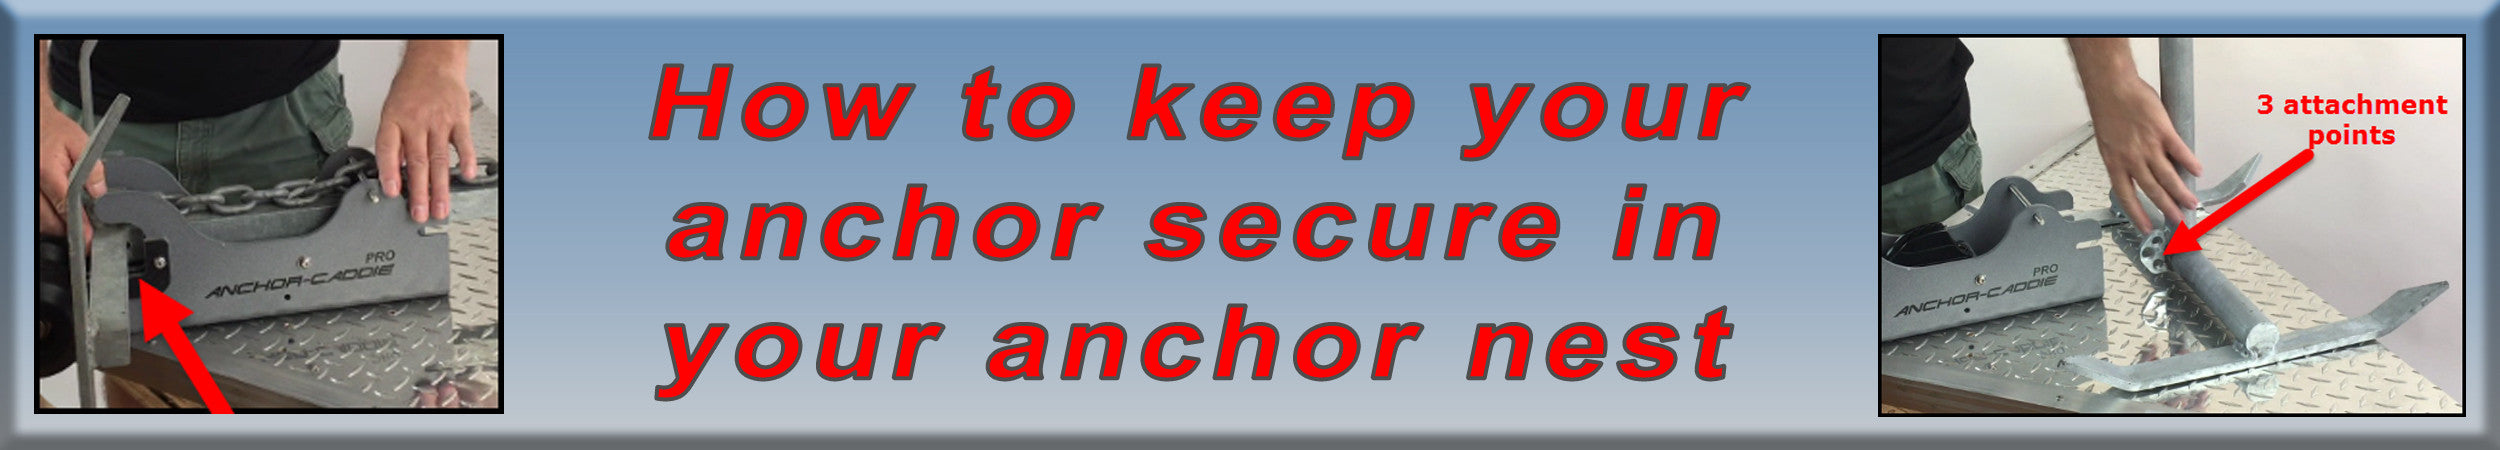 How to secure your anchor in your anchor nest